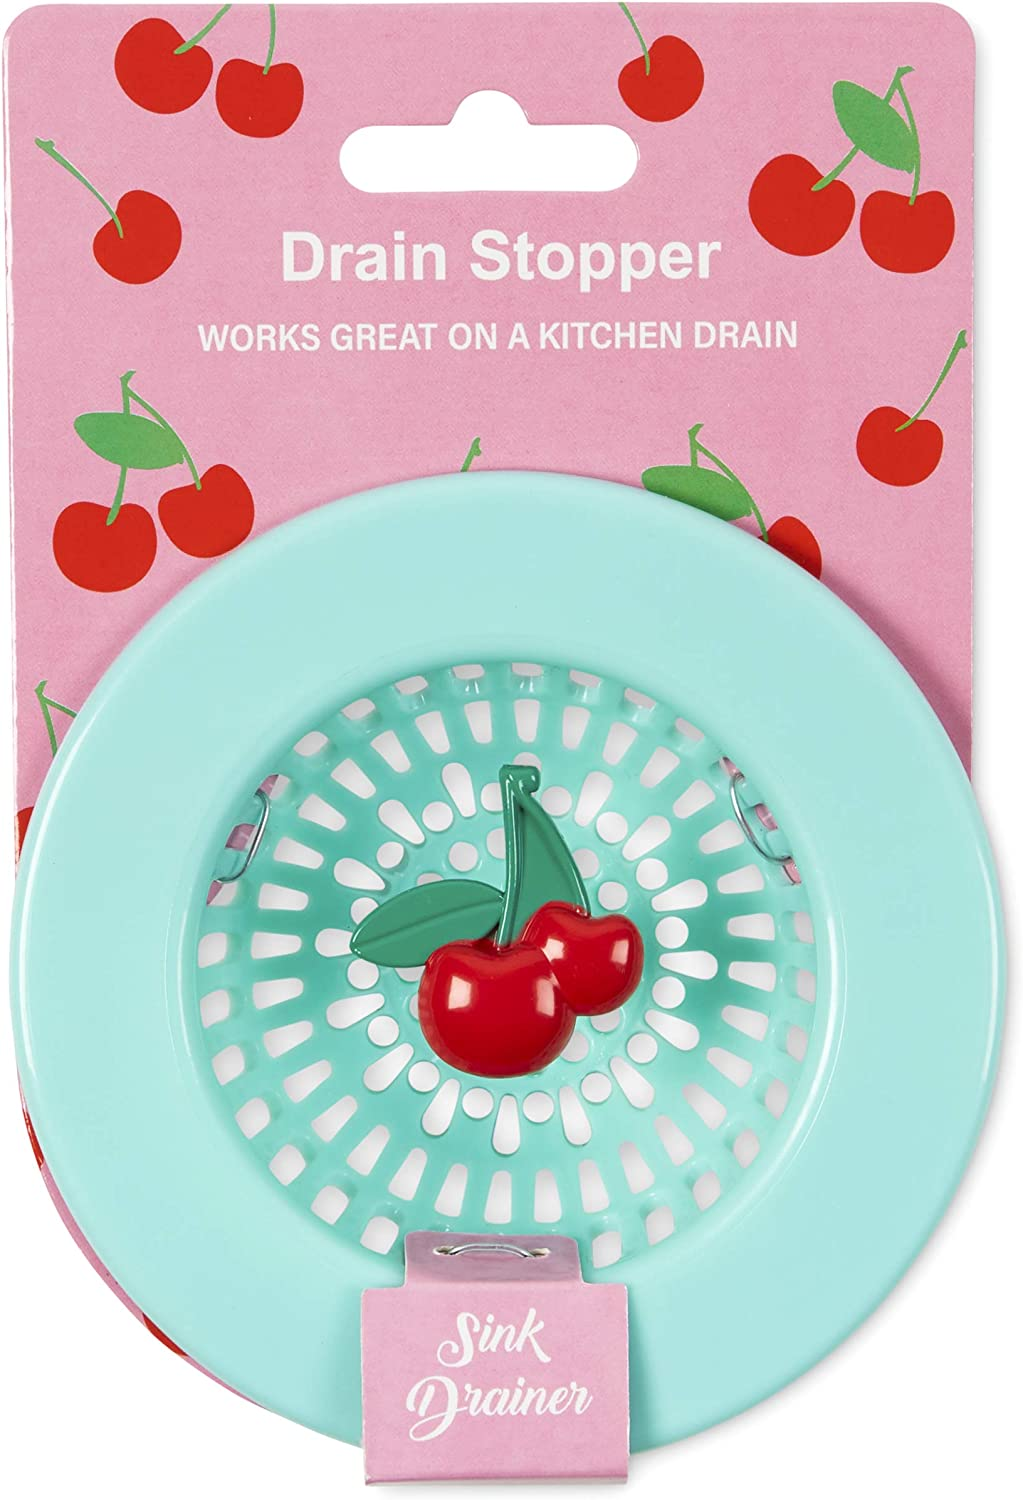 Cherry Themed Kitchen Accessory Plastic Sink Drain Basket Strainer and Stopper with Colorful Blue and Red Design